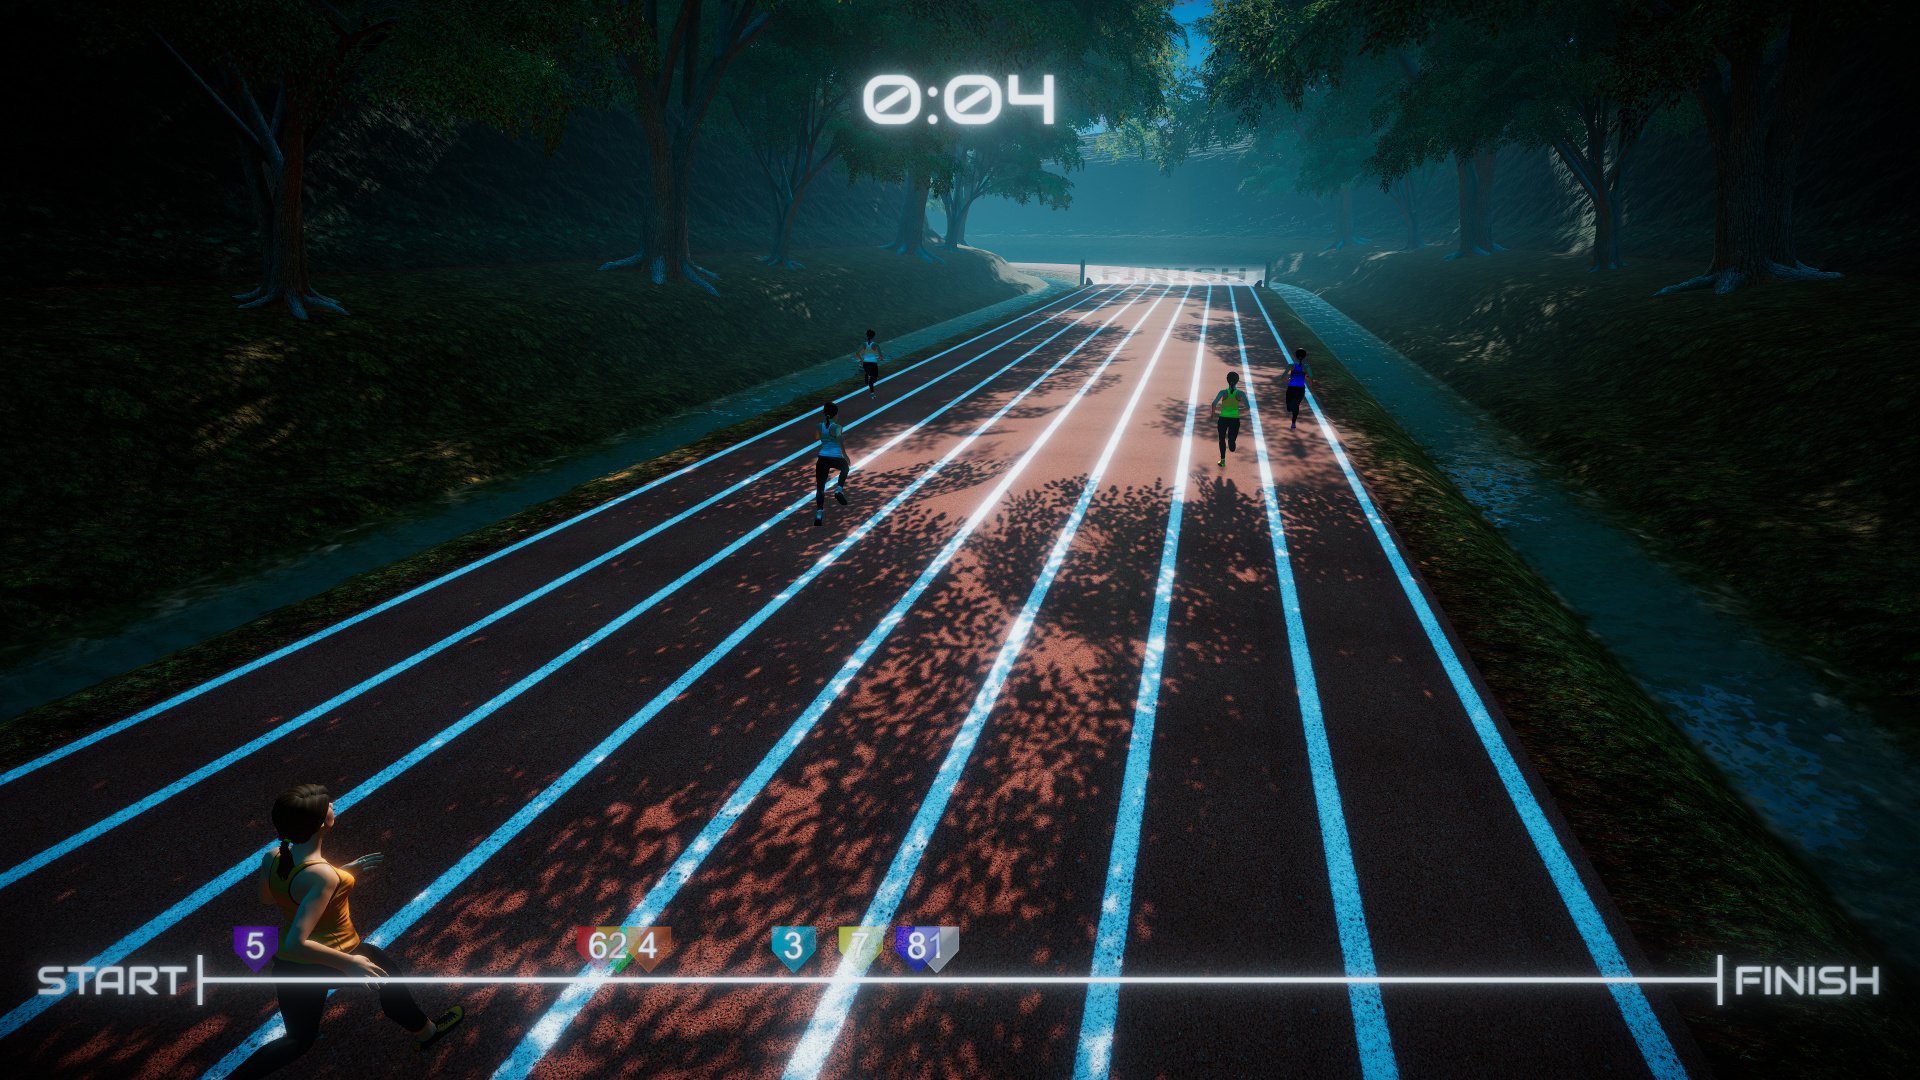 runBEAT runners in virtual environment